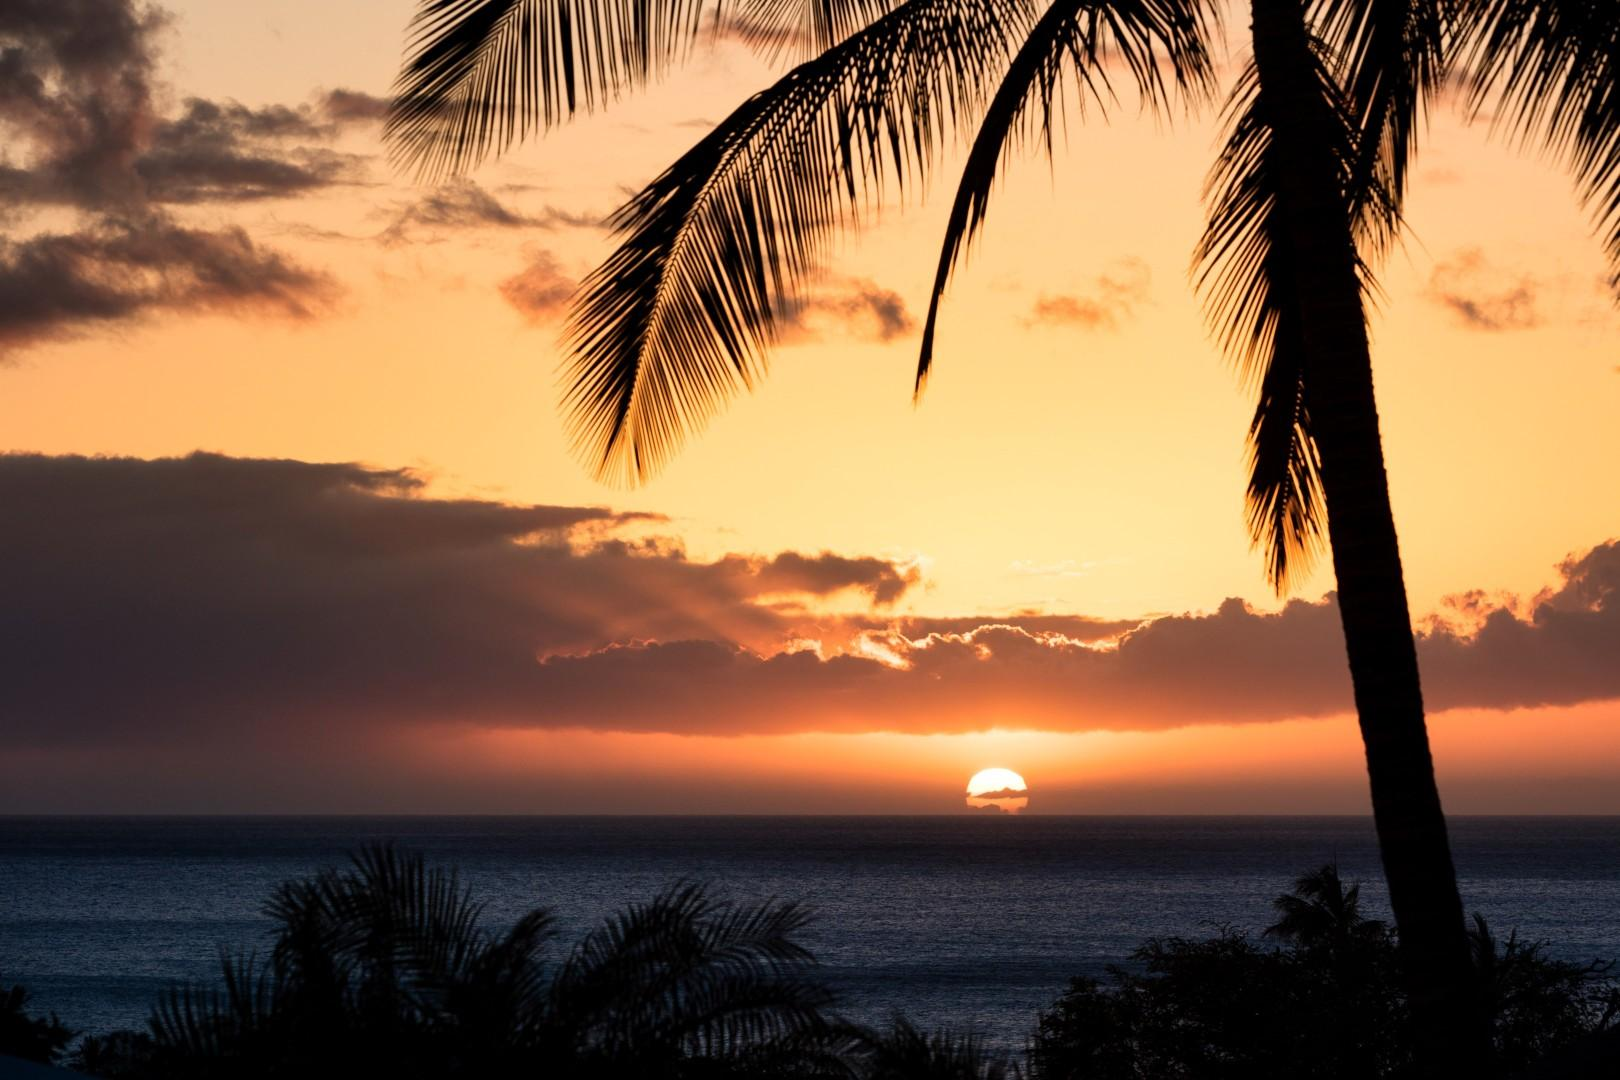 Tropical sunset views from outdoor seating areas - doesn't get any better than this!